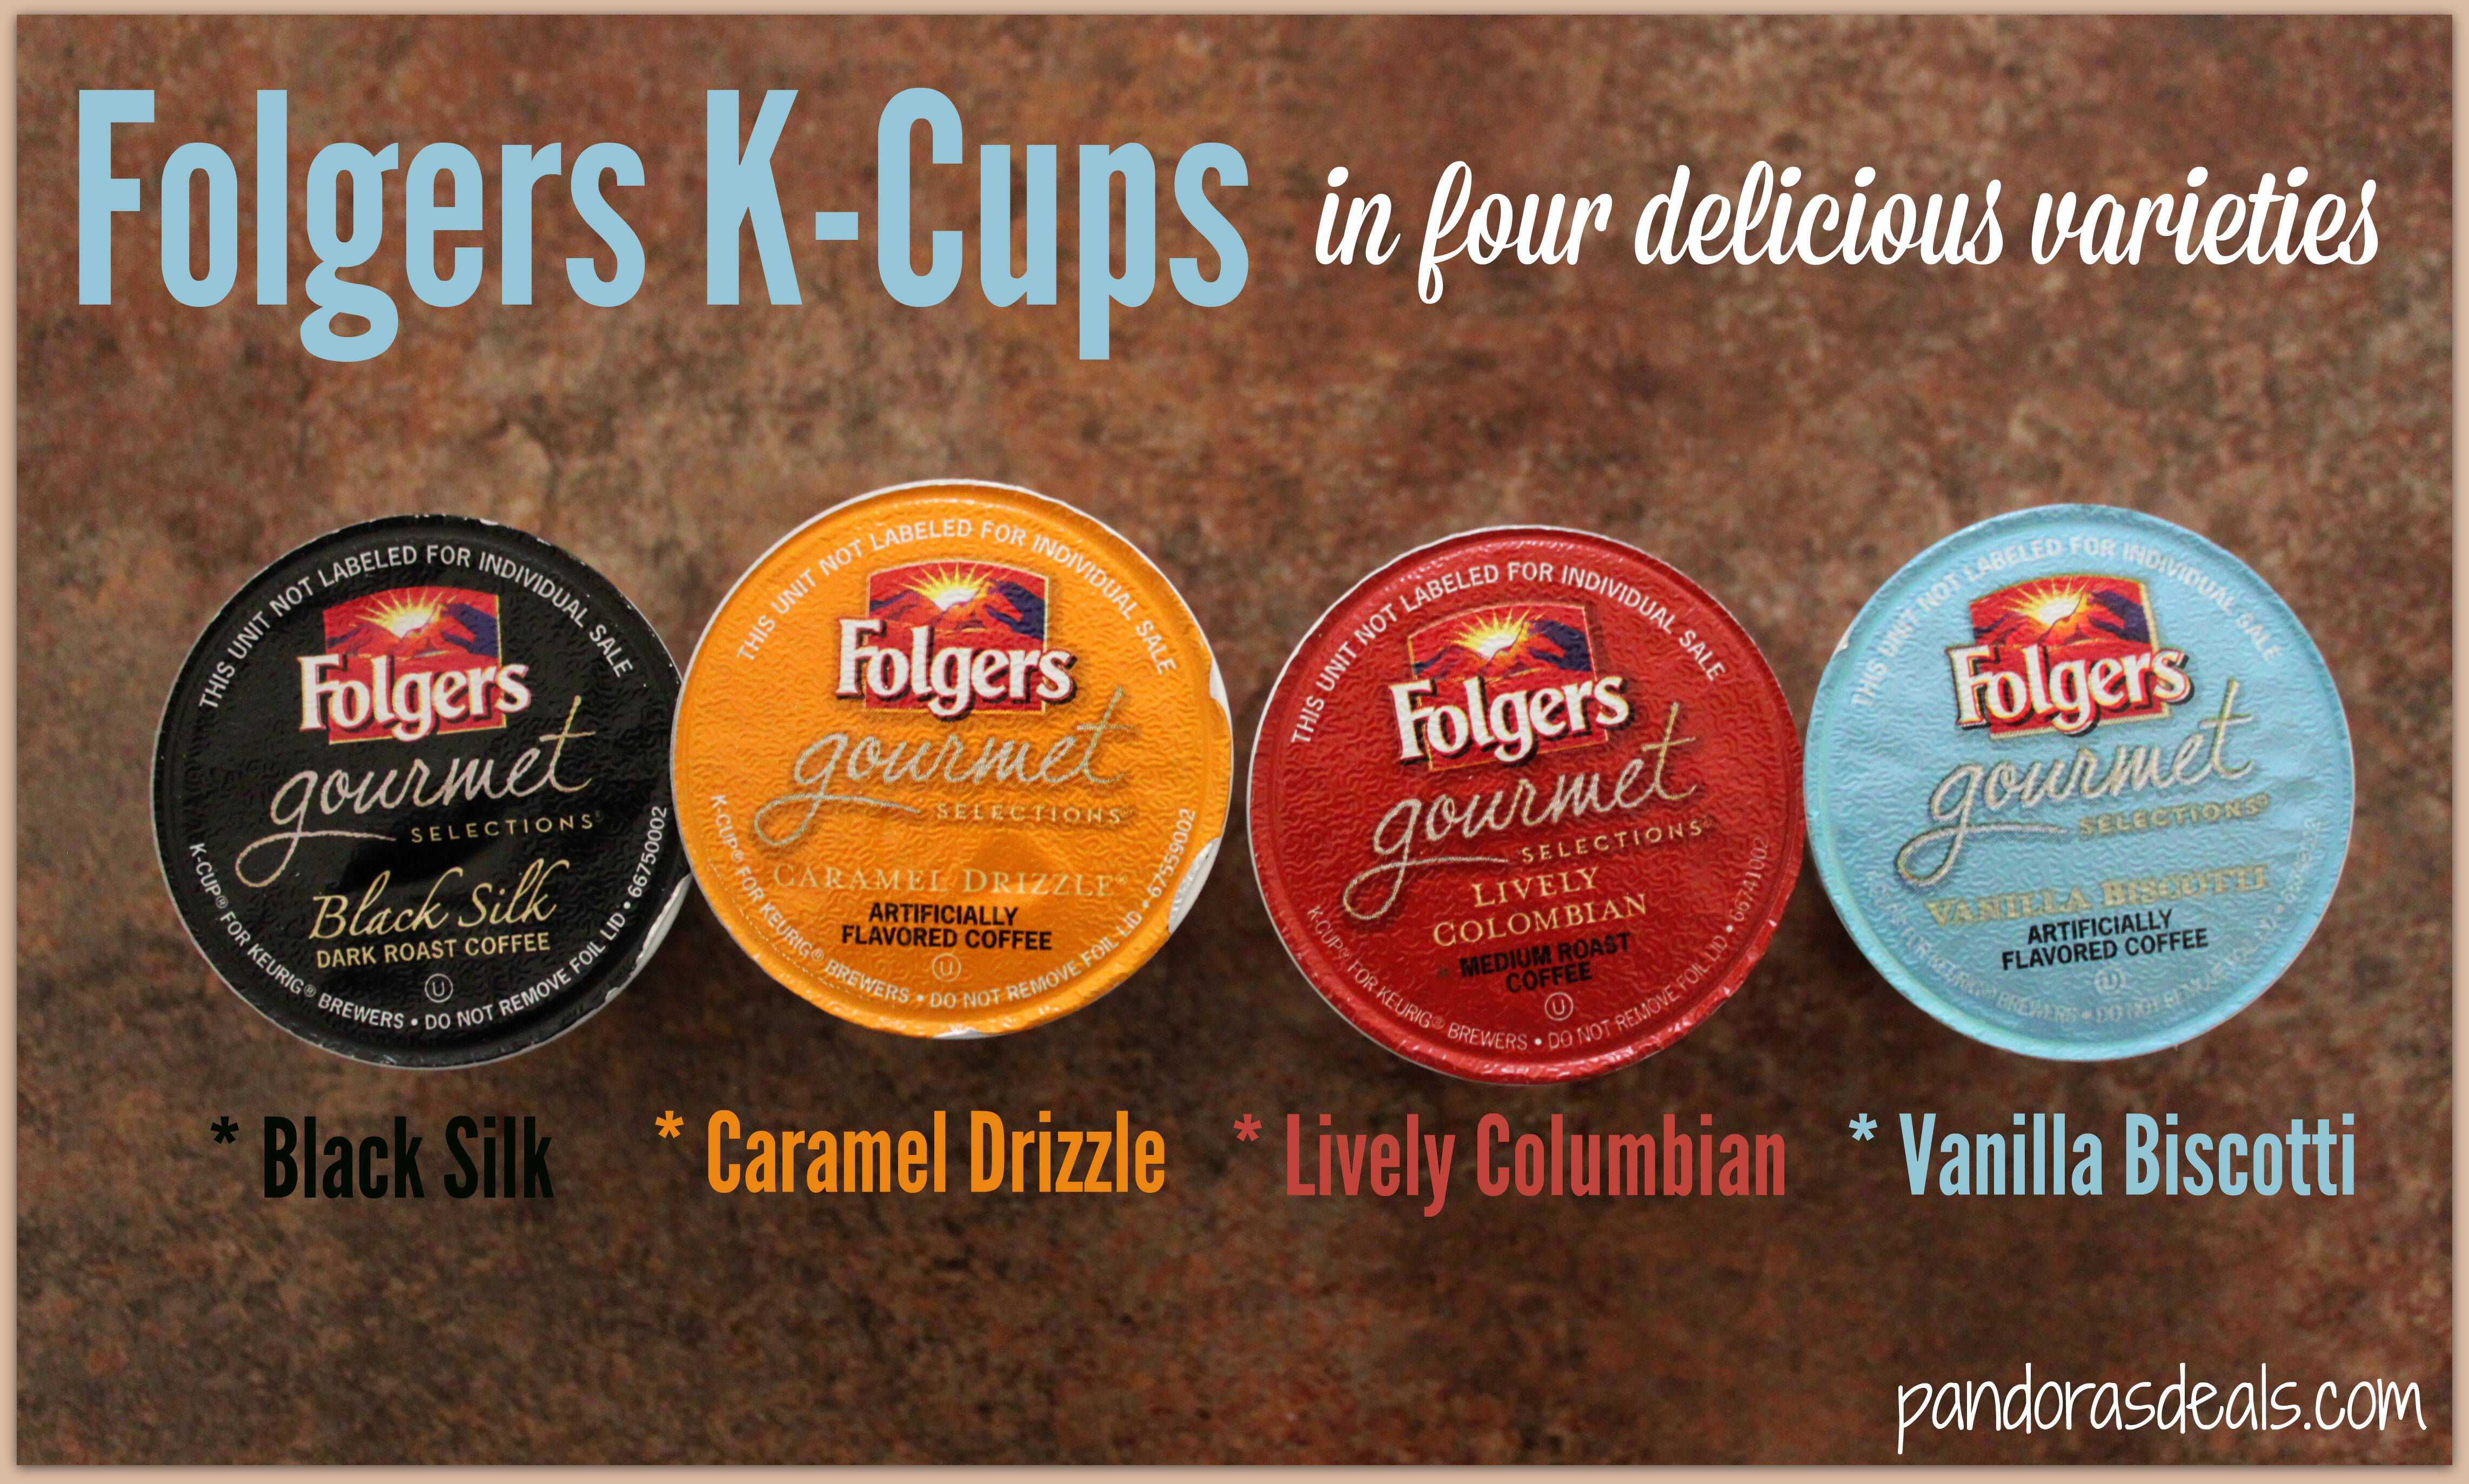 Folgers K-Cups